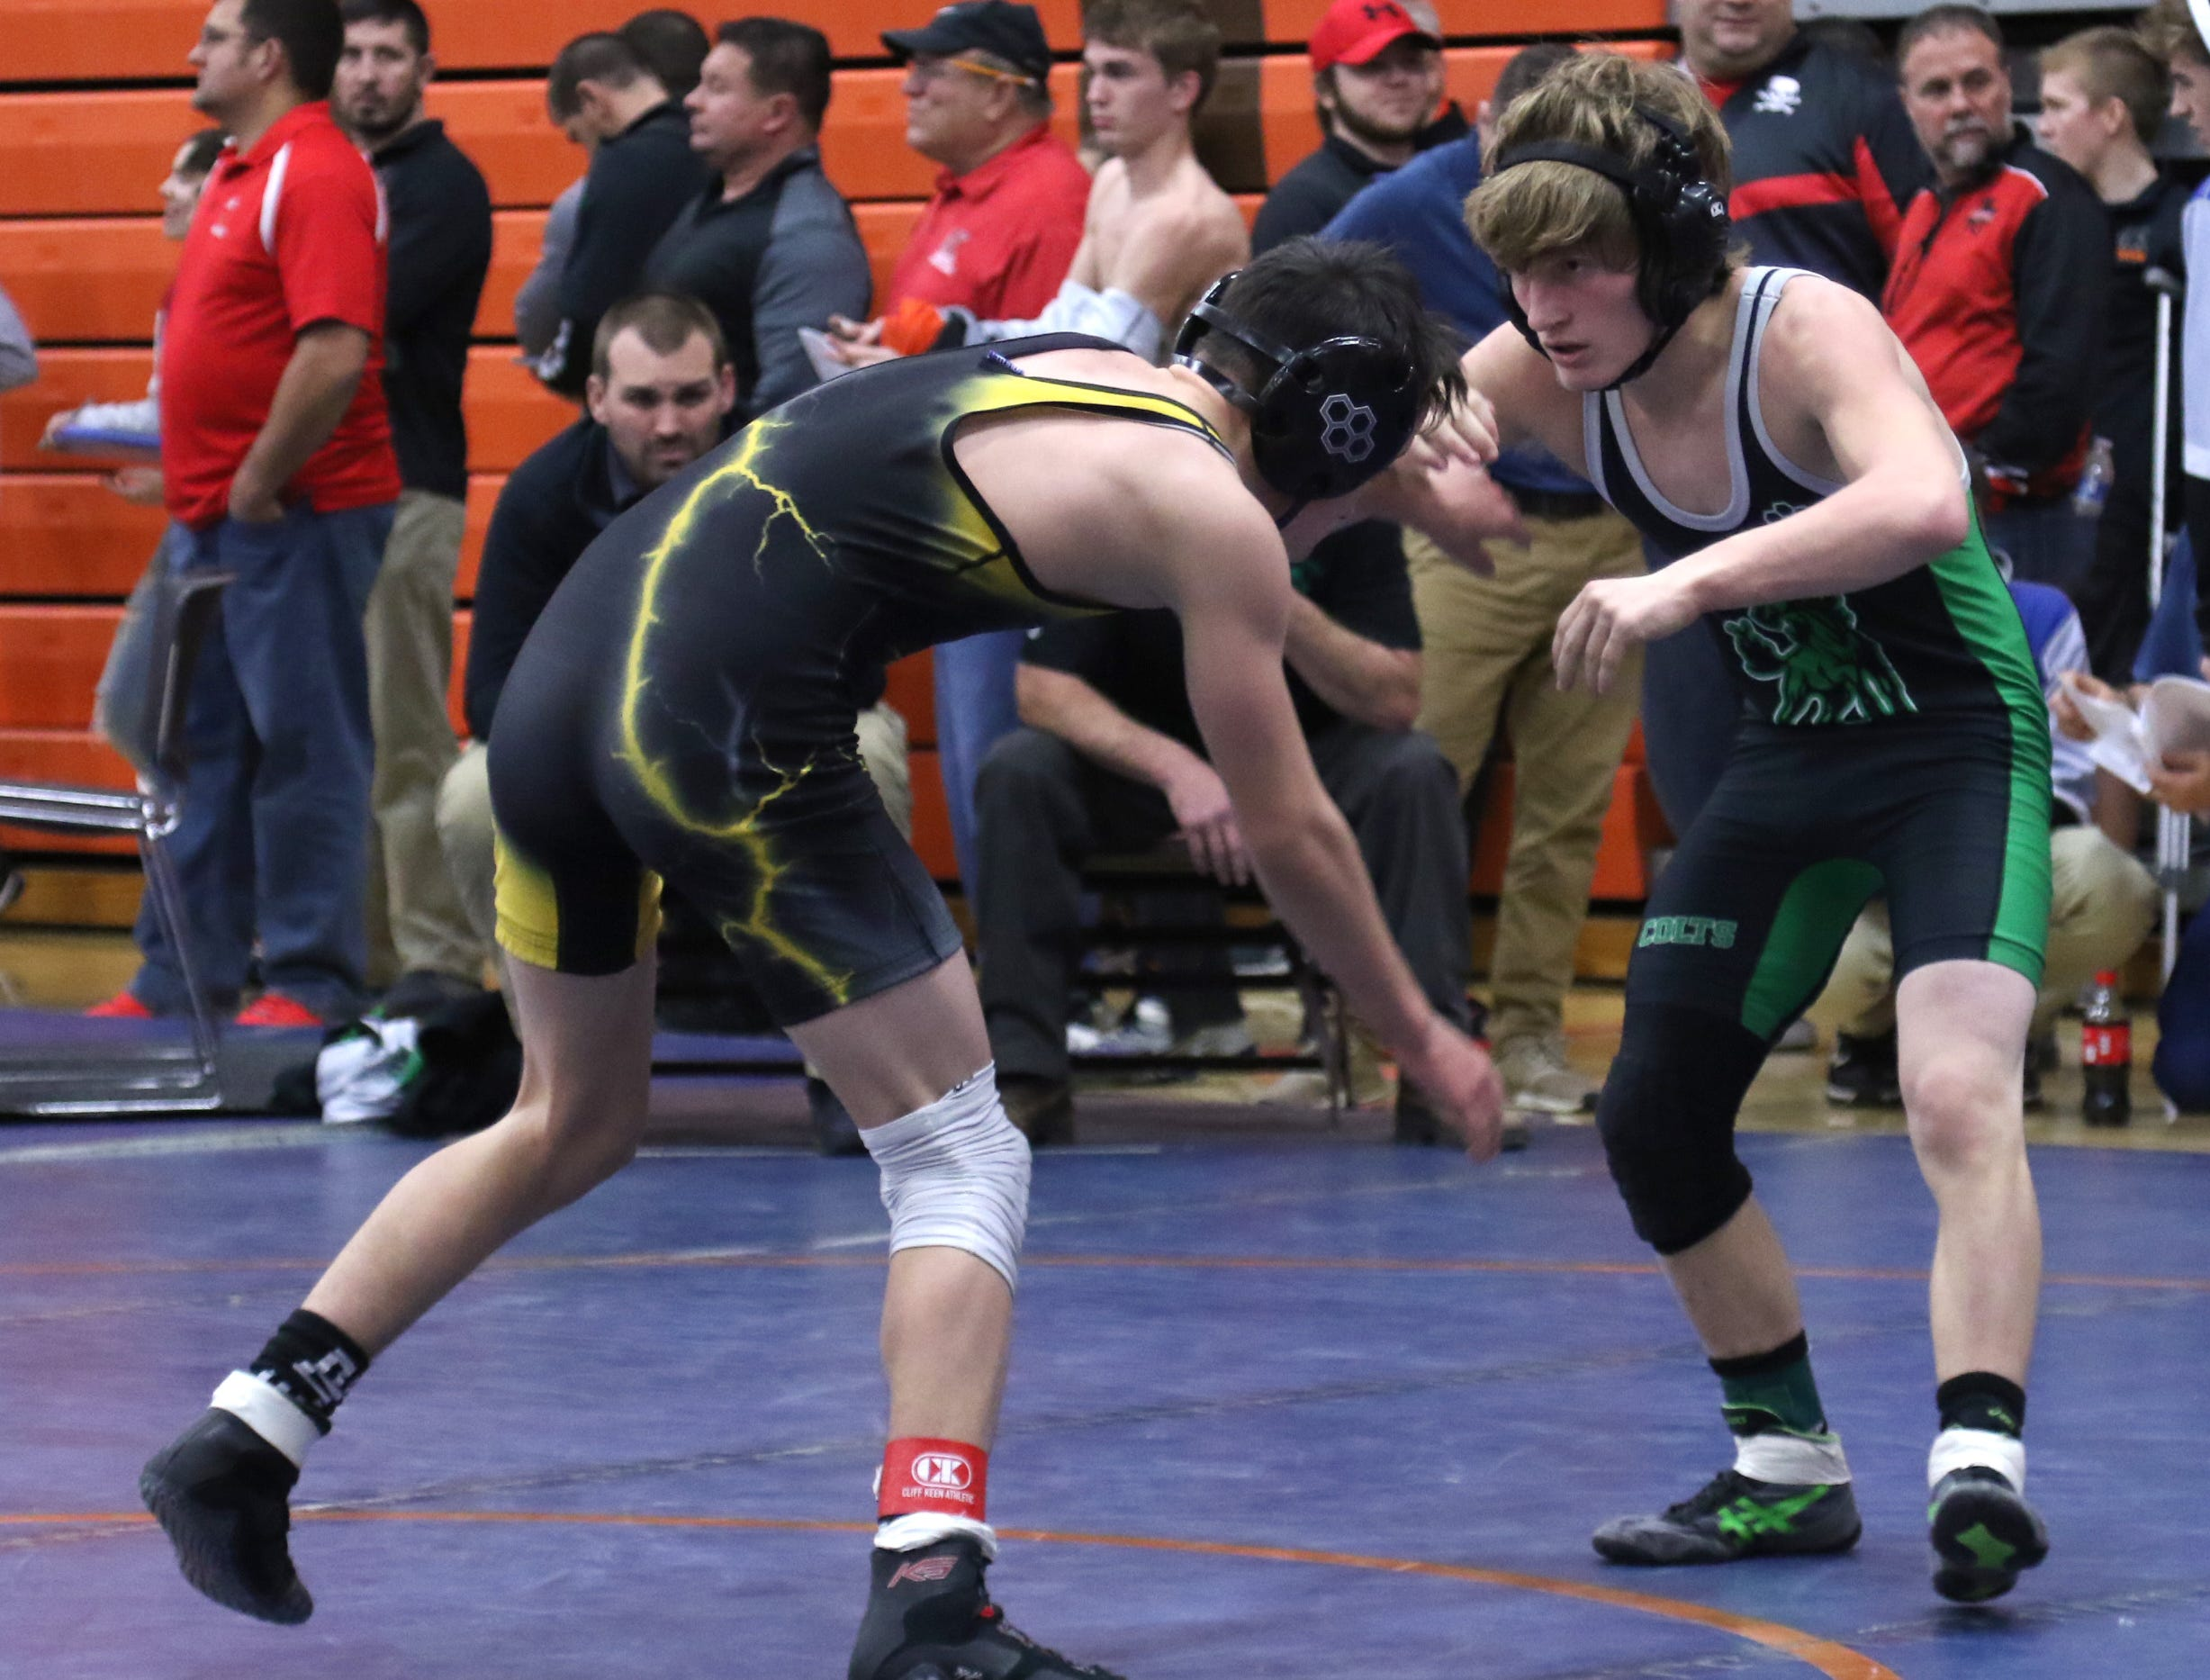 Clear Fork's Travis Bowman spars with his opponent during the J.C. Gorman Wrestling Tournament on Friday.